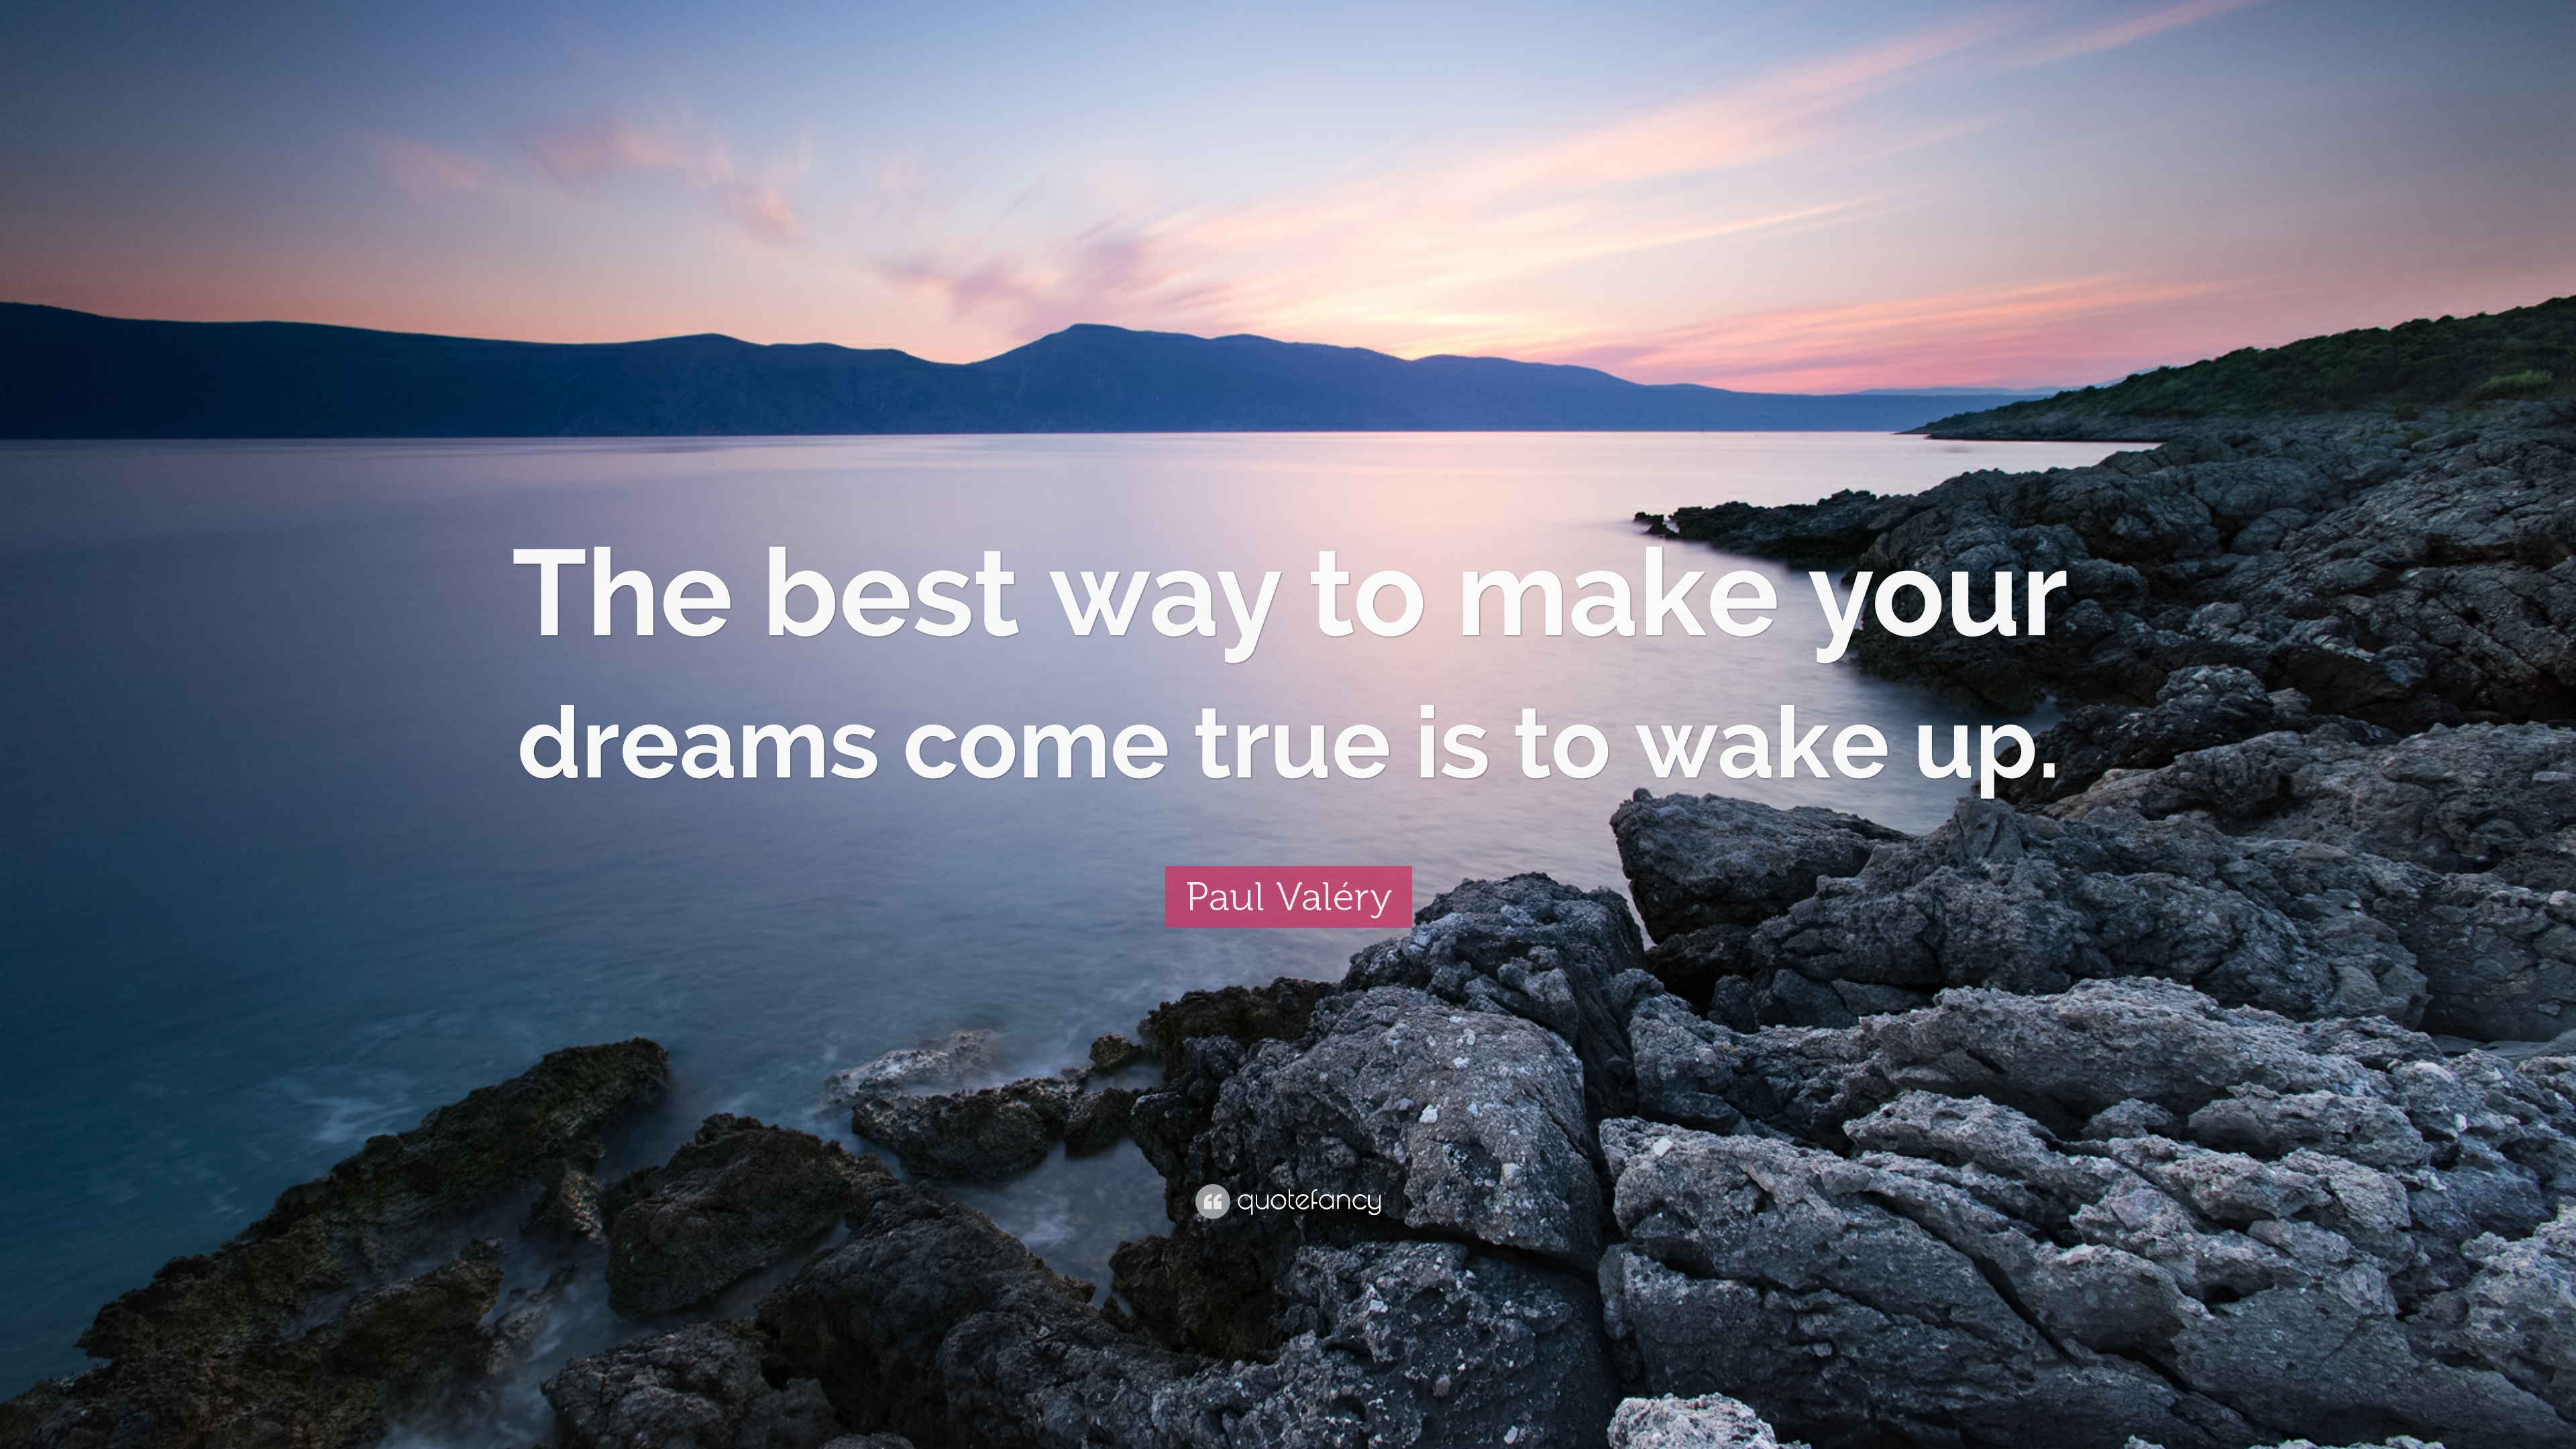 Paul valry quote the best way to make your dreams come true is to paul valry quote the best way to make your dreams come true is to thecheapjerseys Choice Image